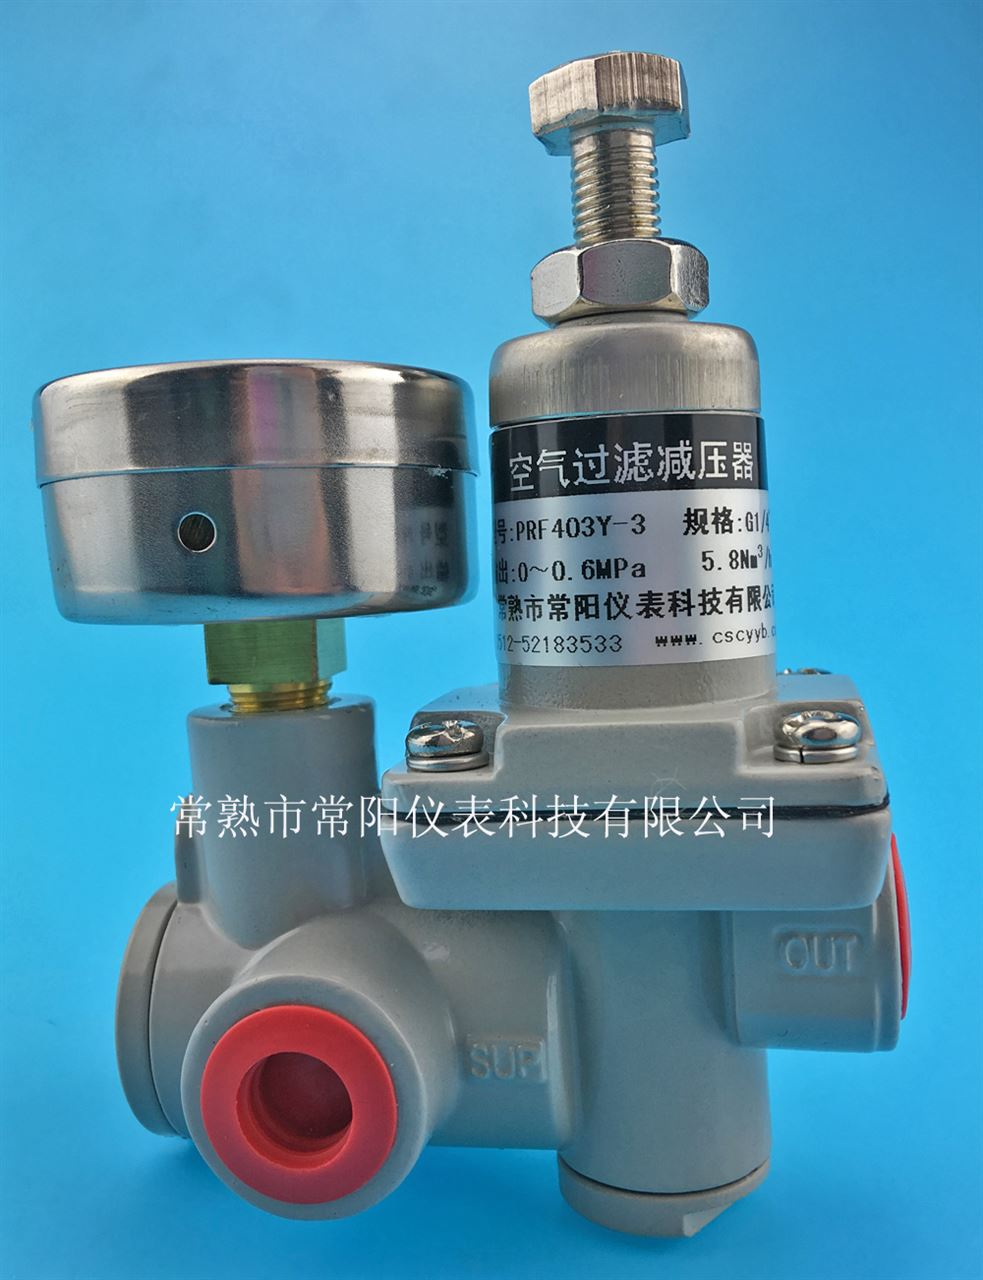 <strong><strong><strong>PRF403-03空气过滤减压器| 过滤调压阀</strong></strong></strong>